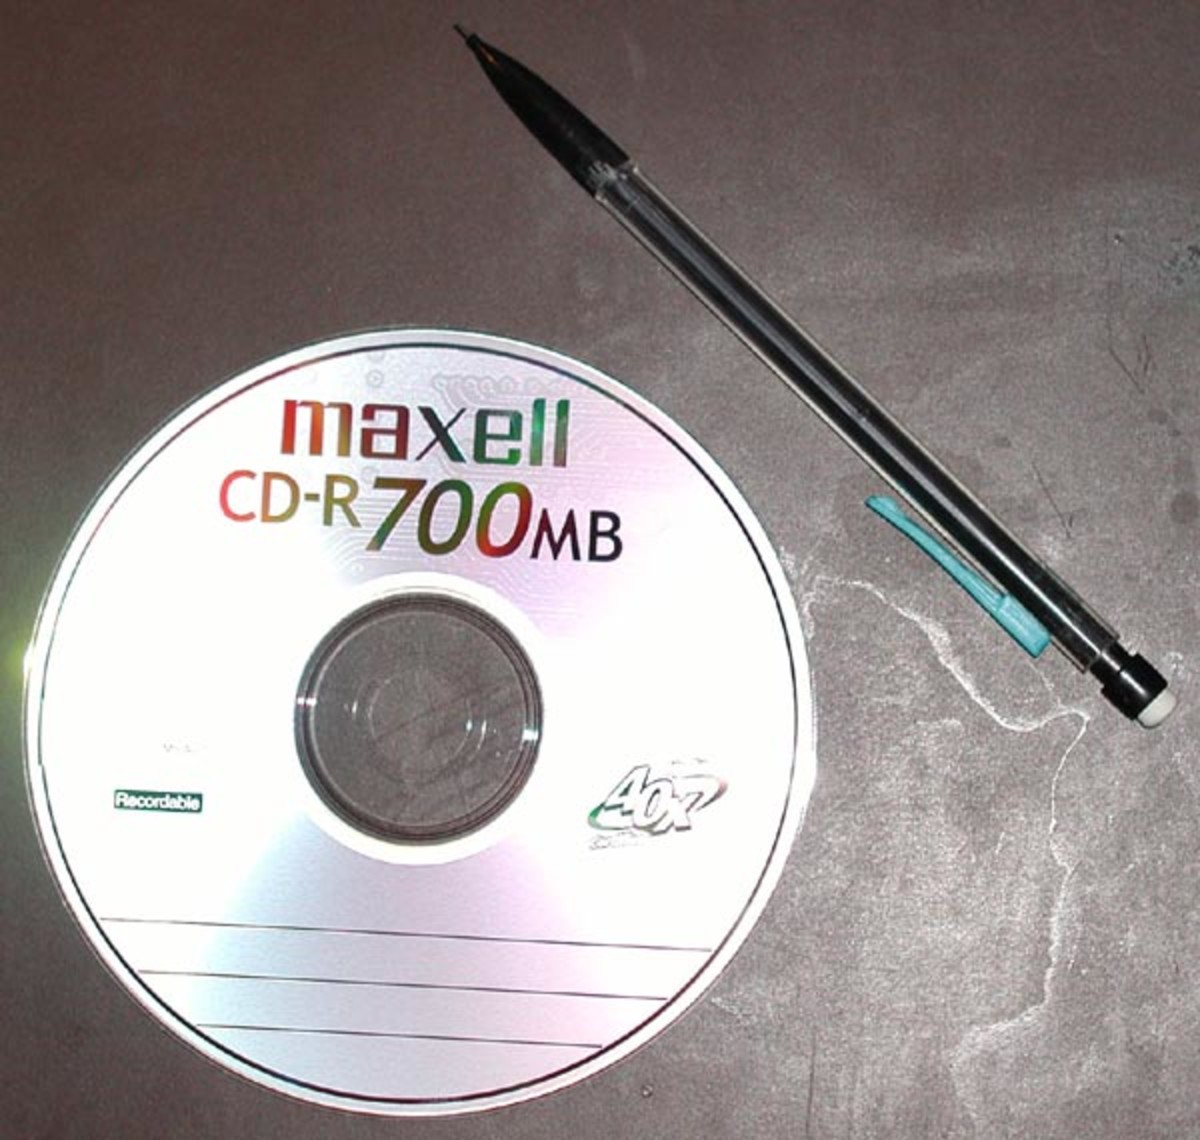 The CD was the storage media for audio files